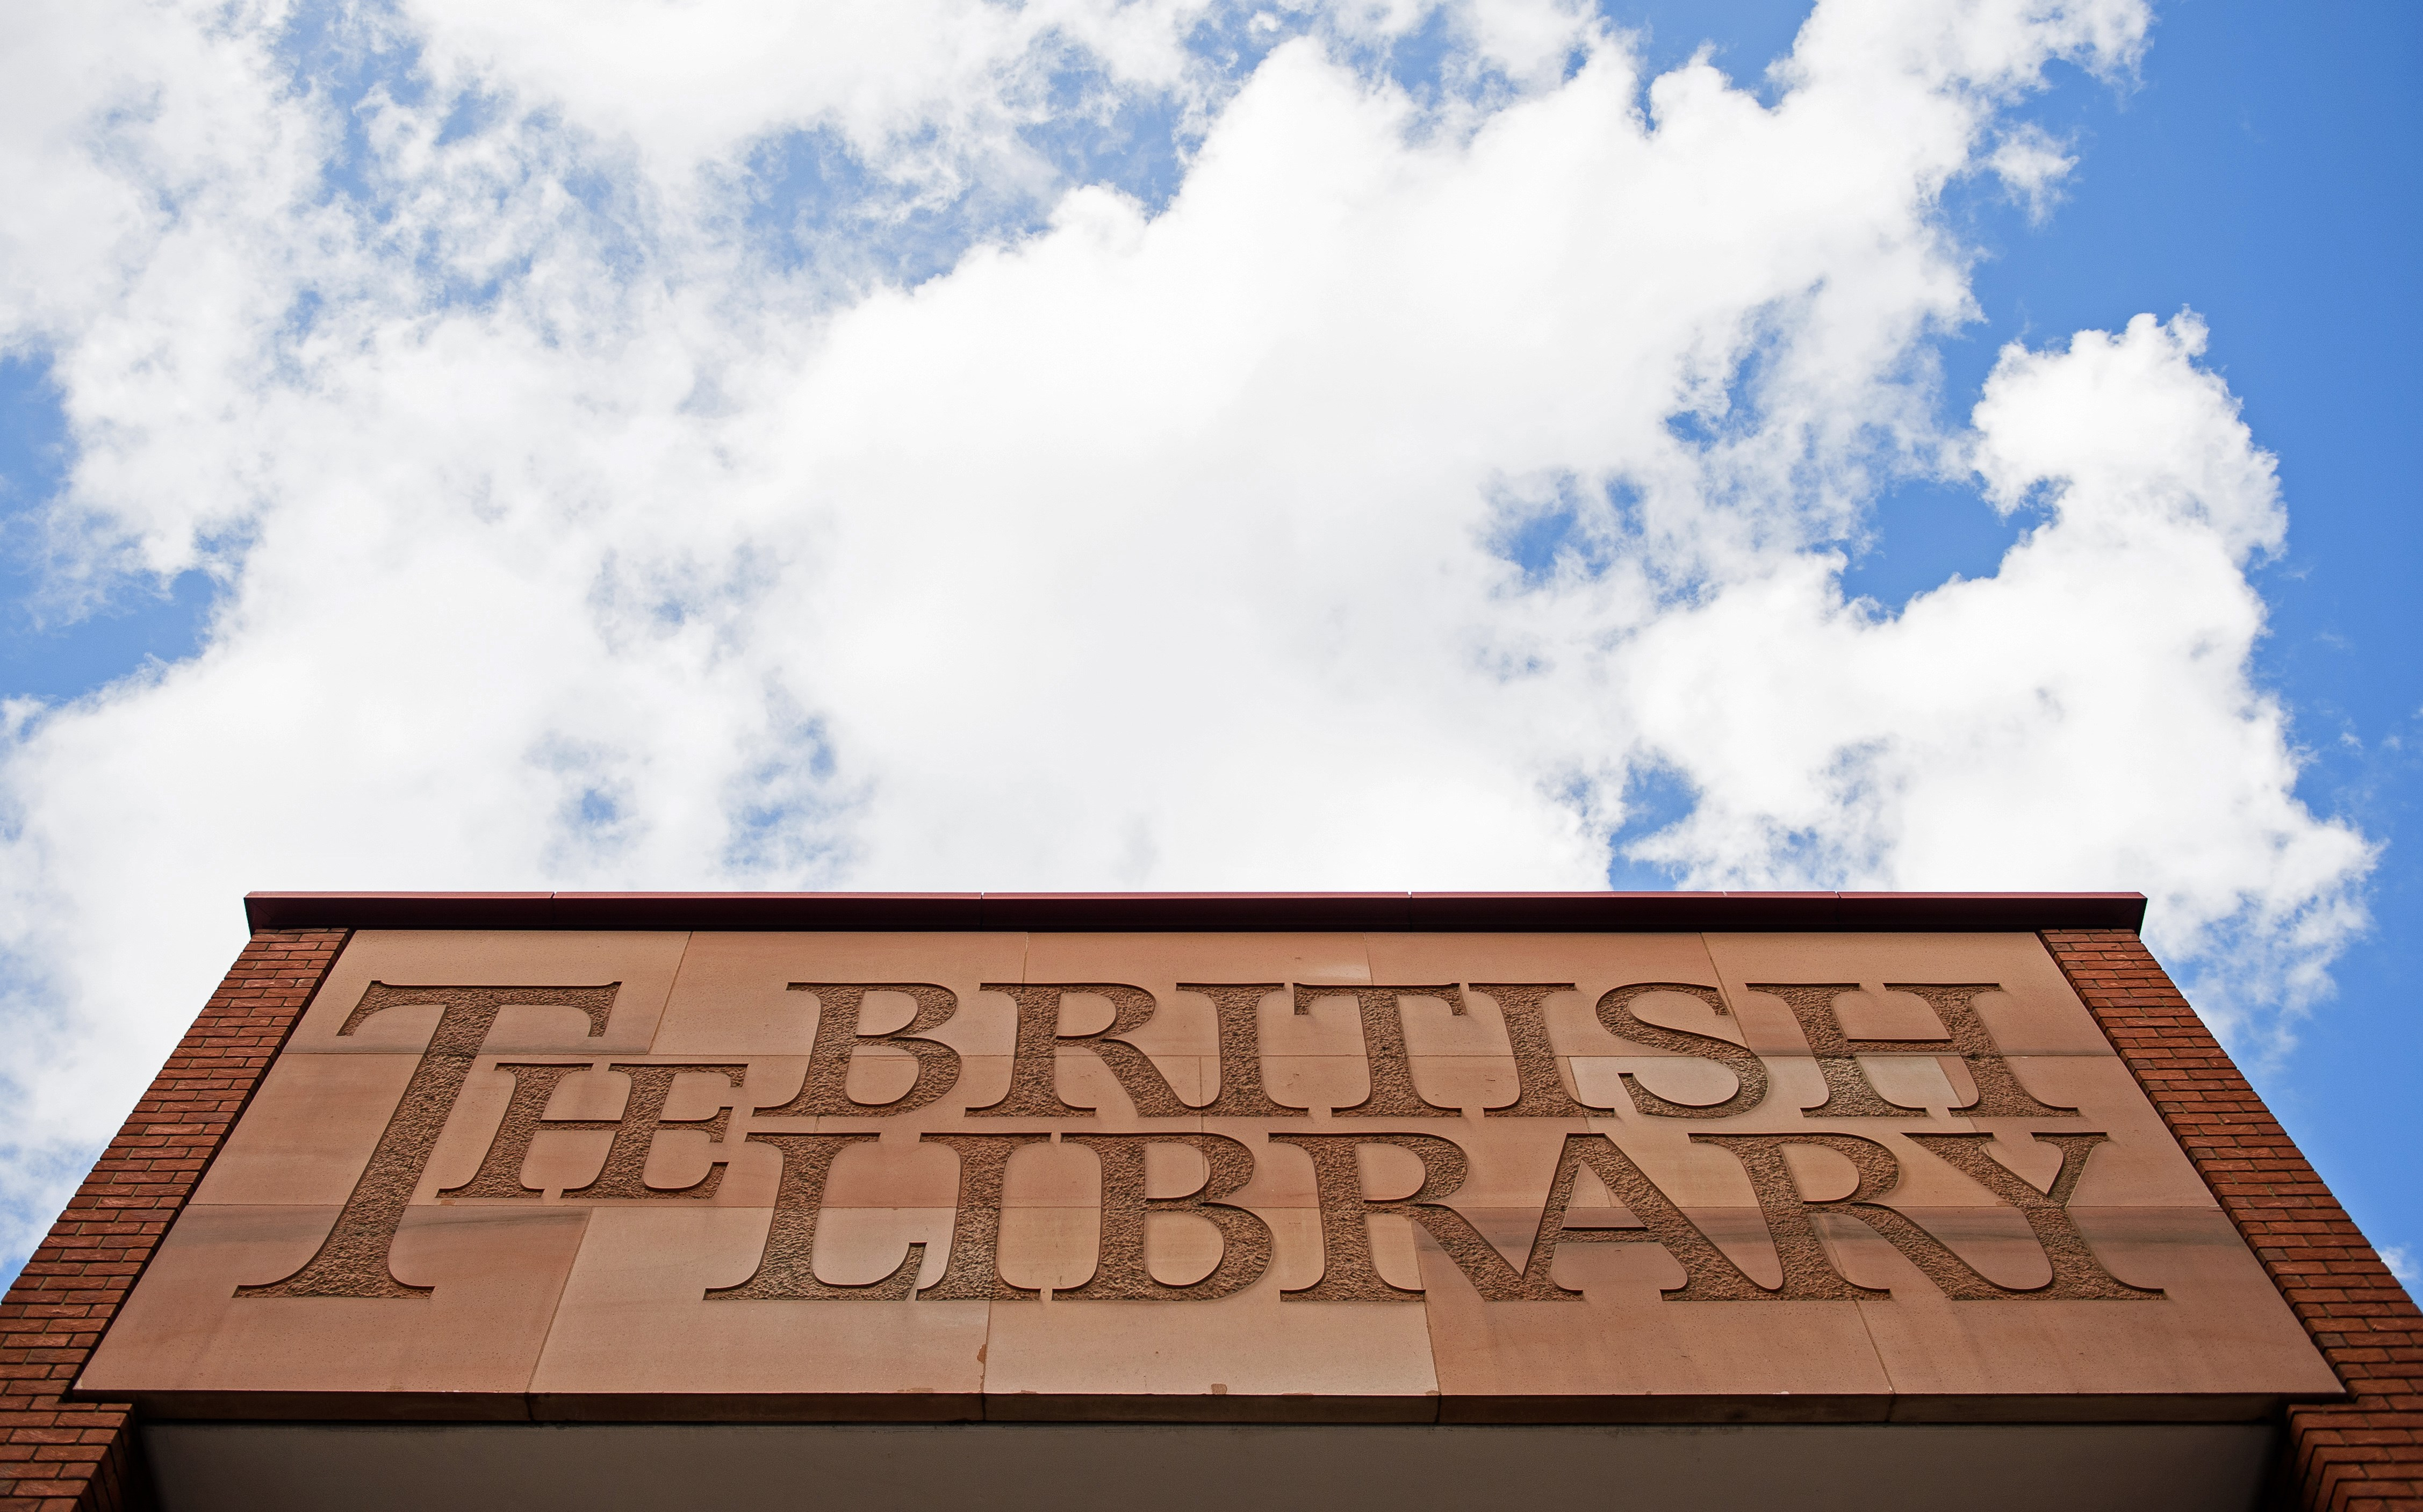 The British Library in central London